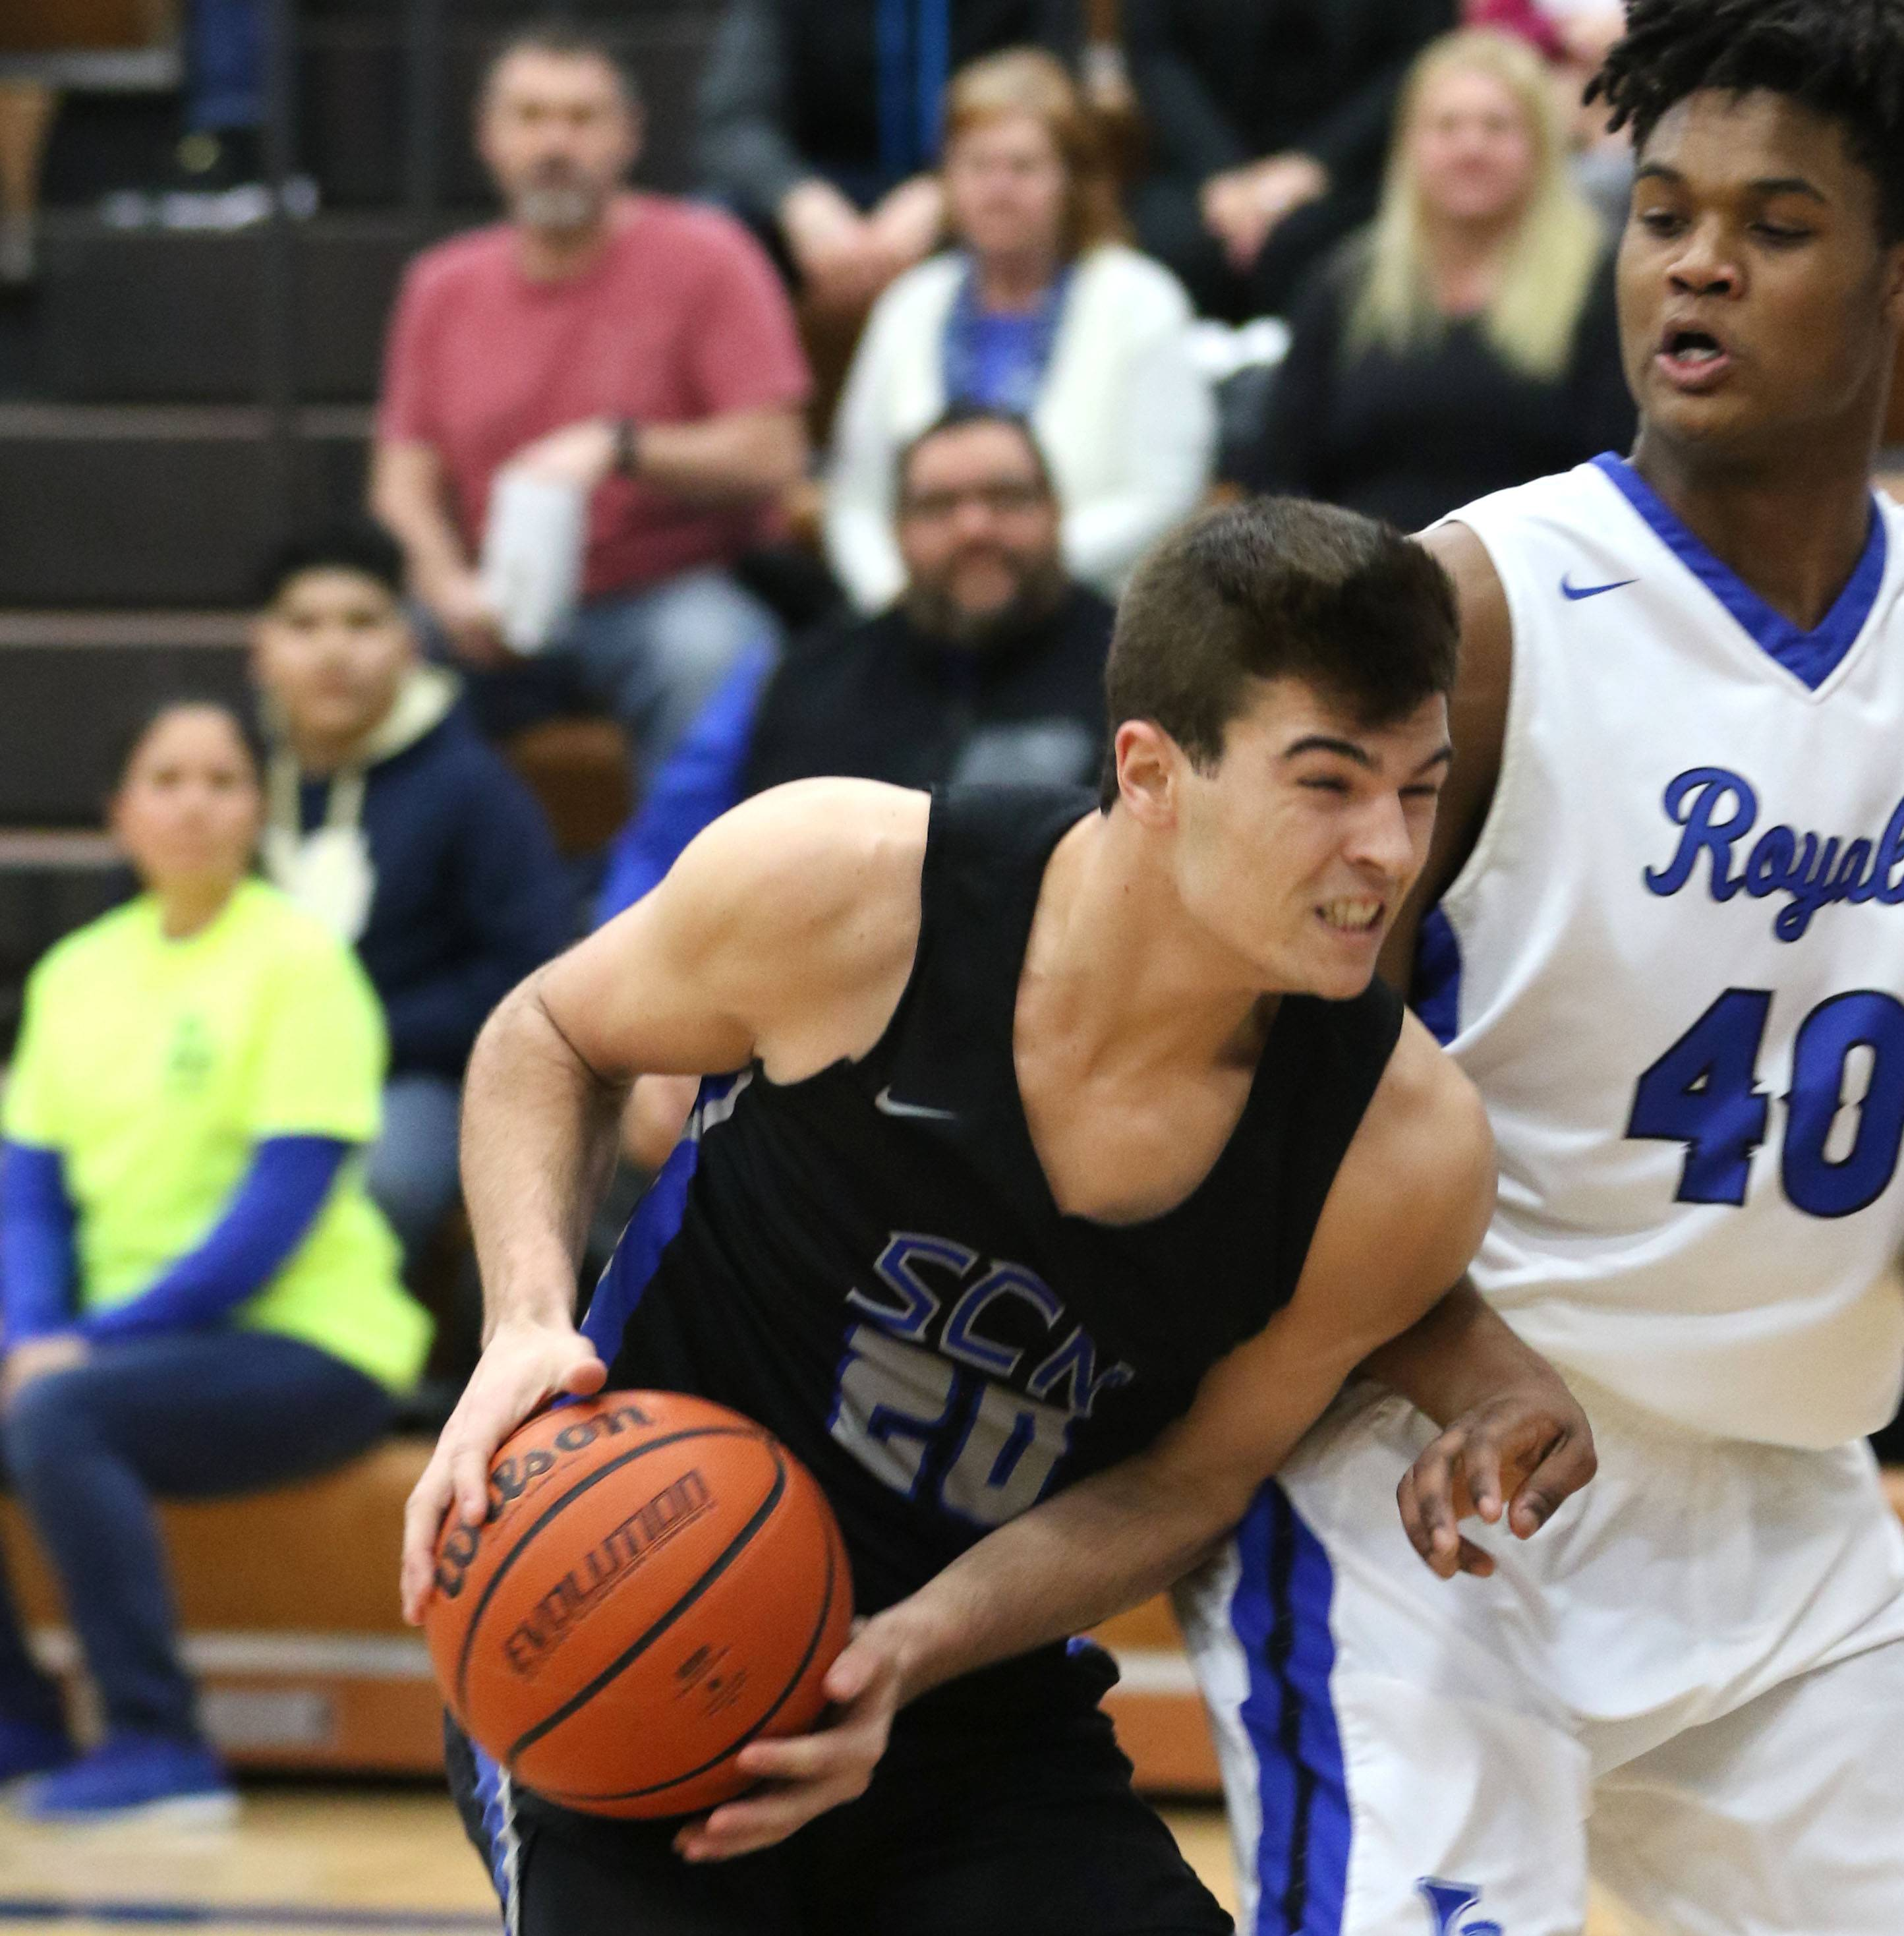 St. Charles North's Kyle King battles to the hoop against Larkin's Jalen Shaw during a varsity boys basketball game at Larkin High School in Elgin Friday night.